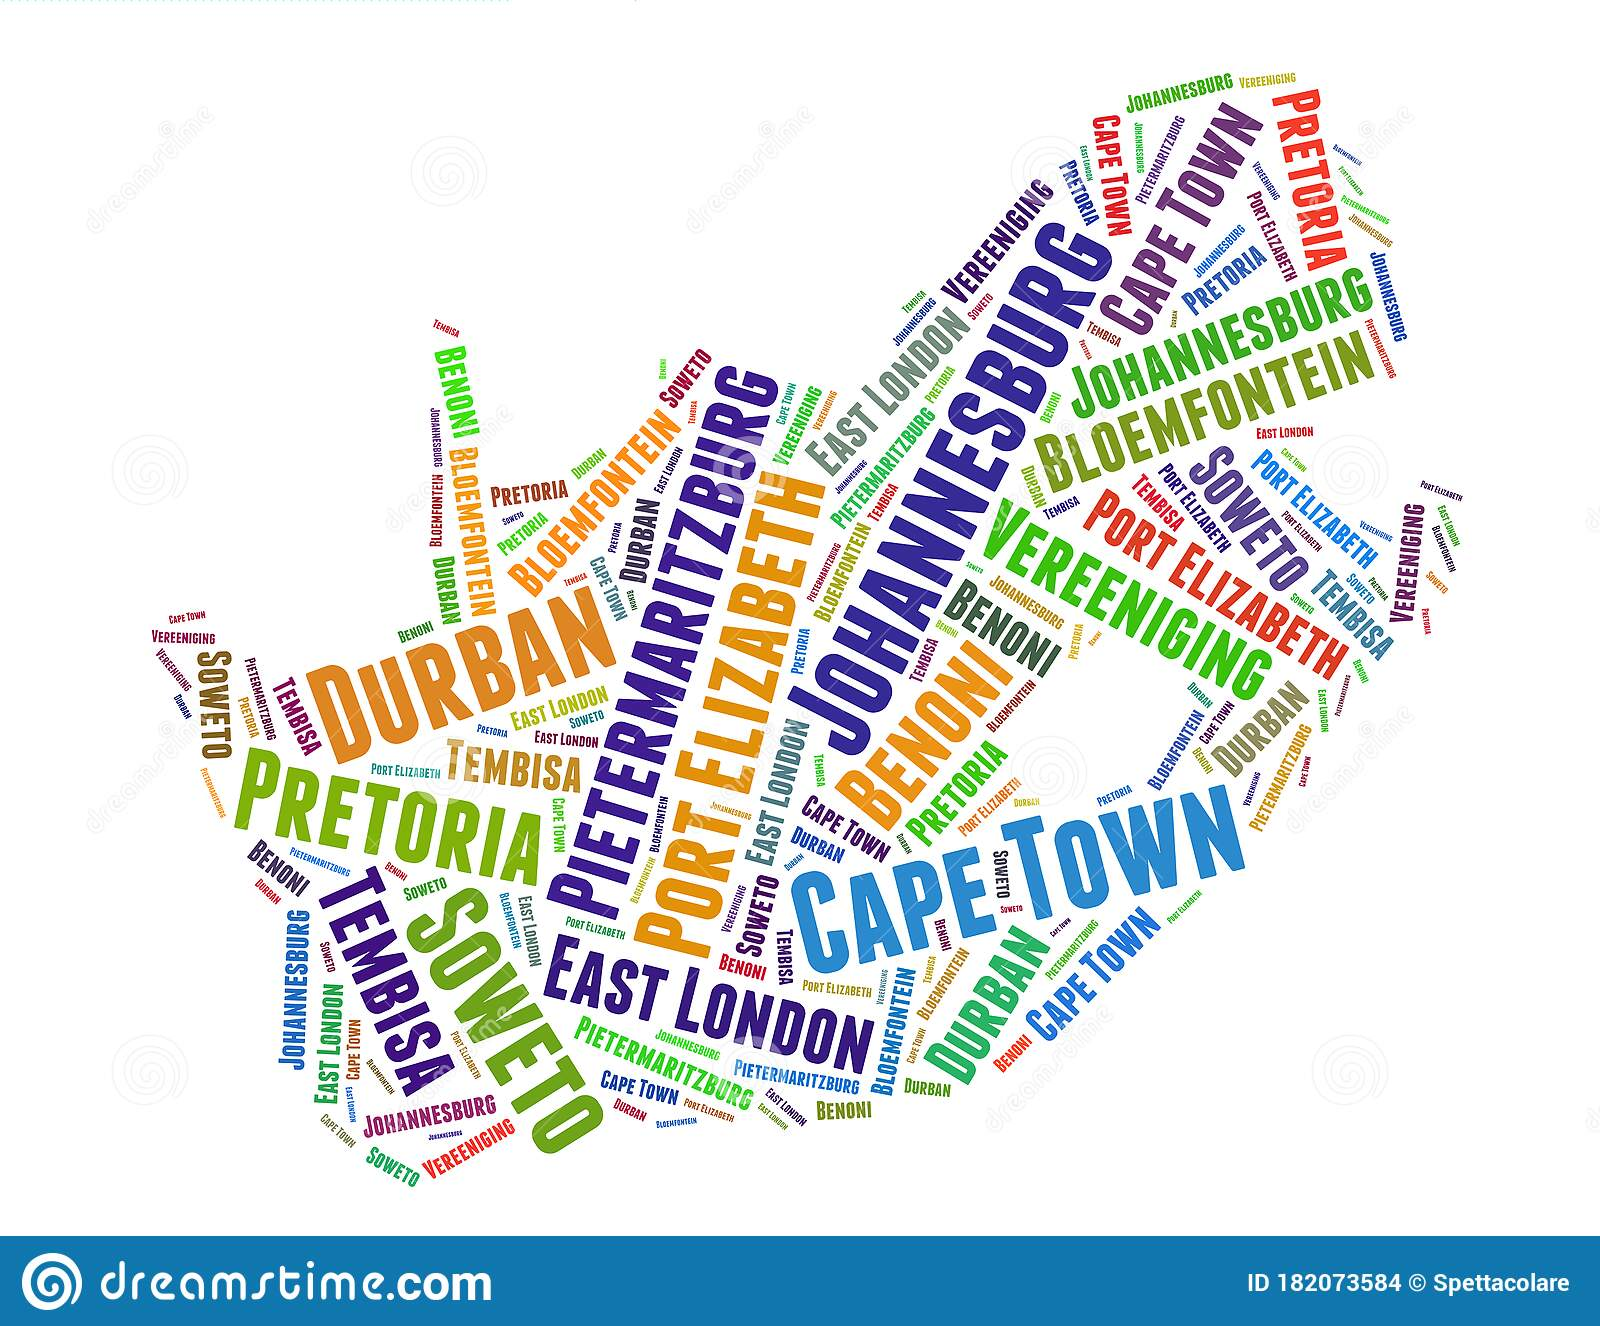 South Africa Map And List Of Cities Word Cloud Concept